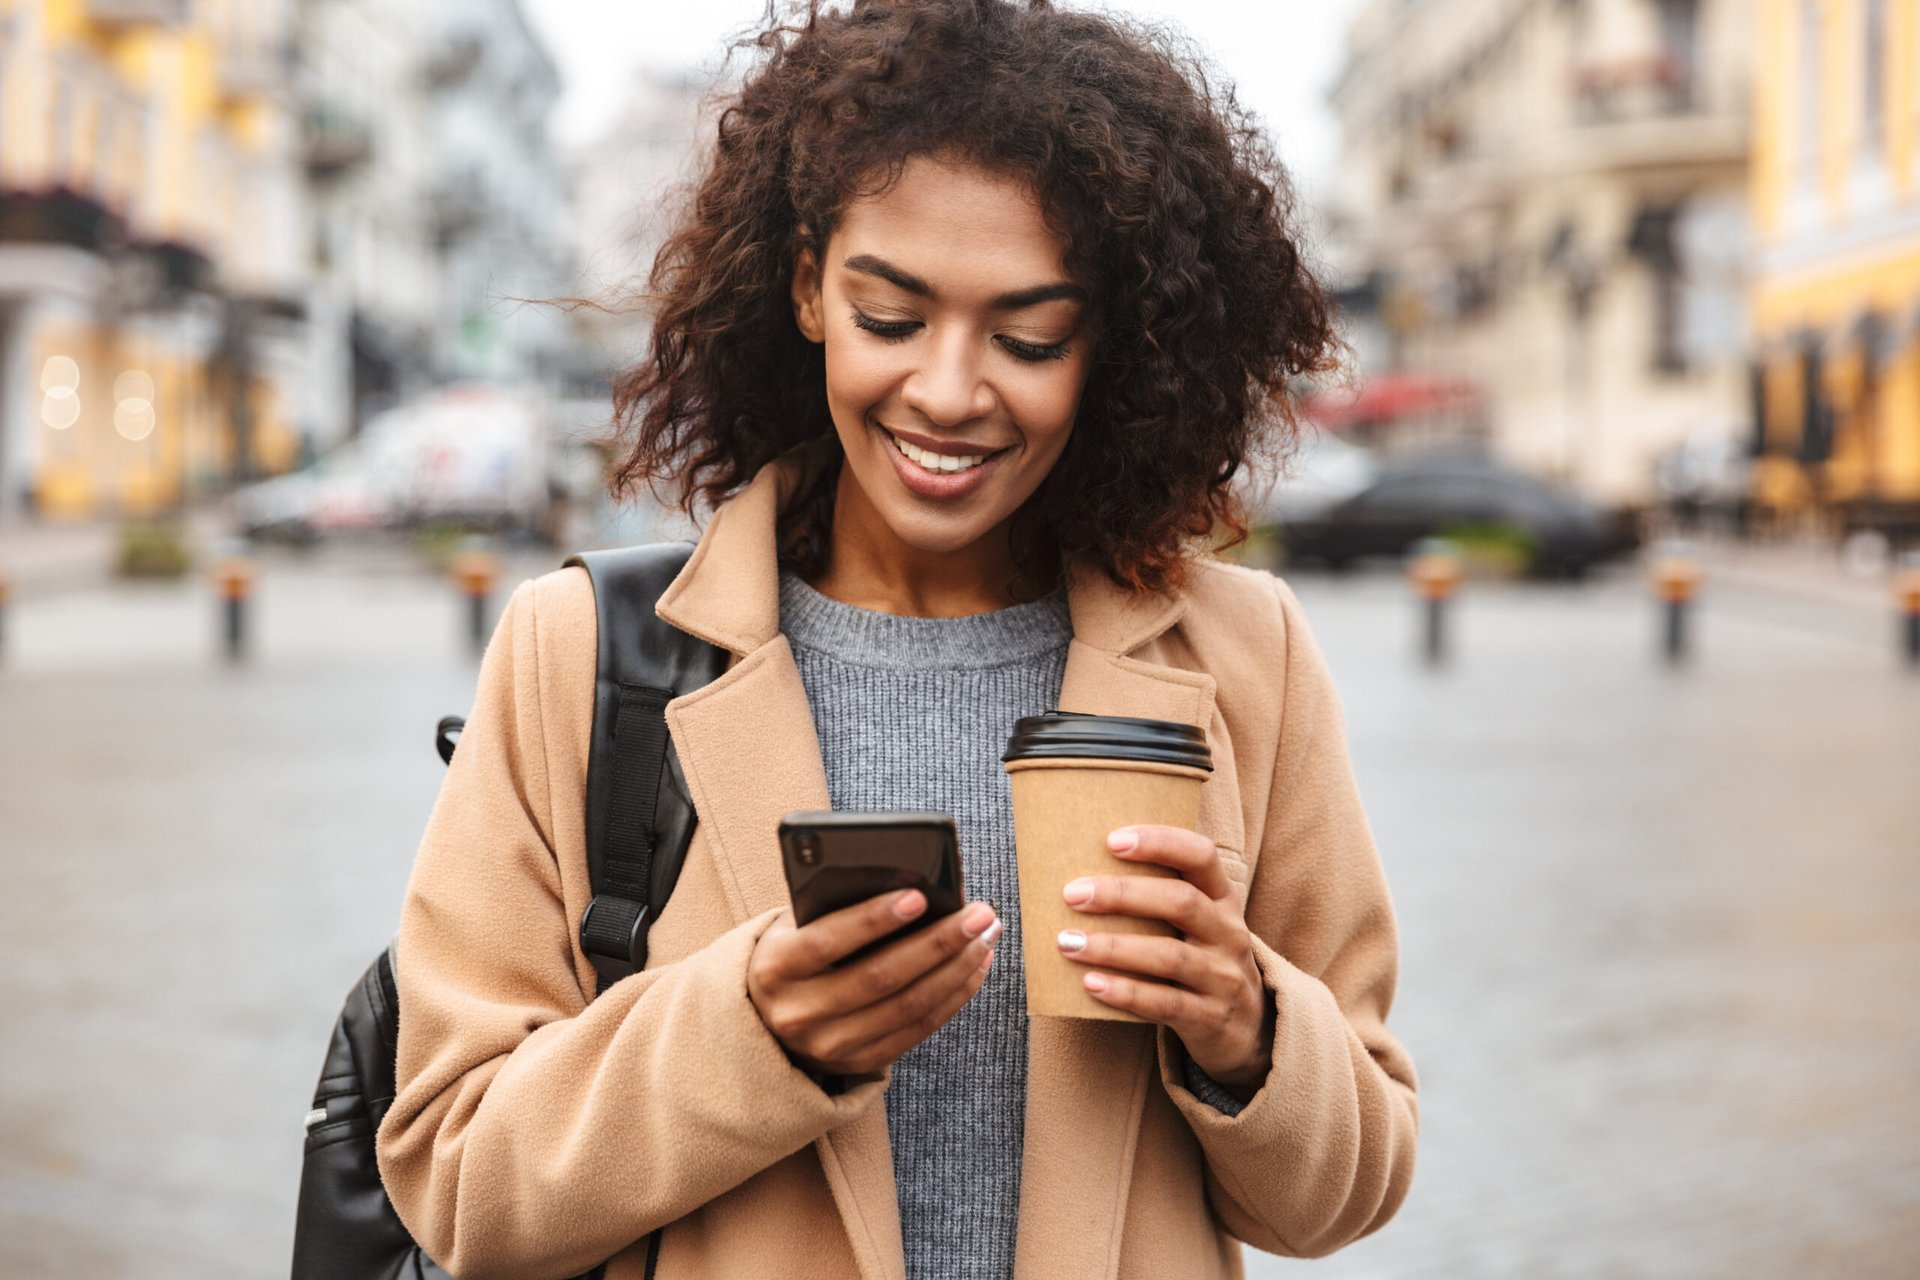 Happy woman walking with phone and coffee